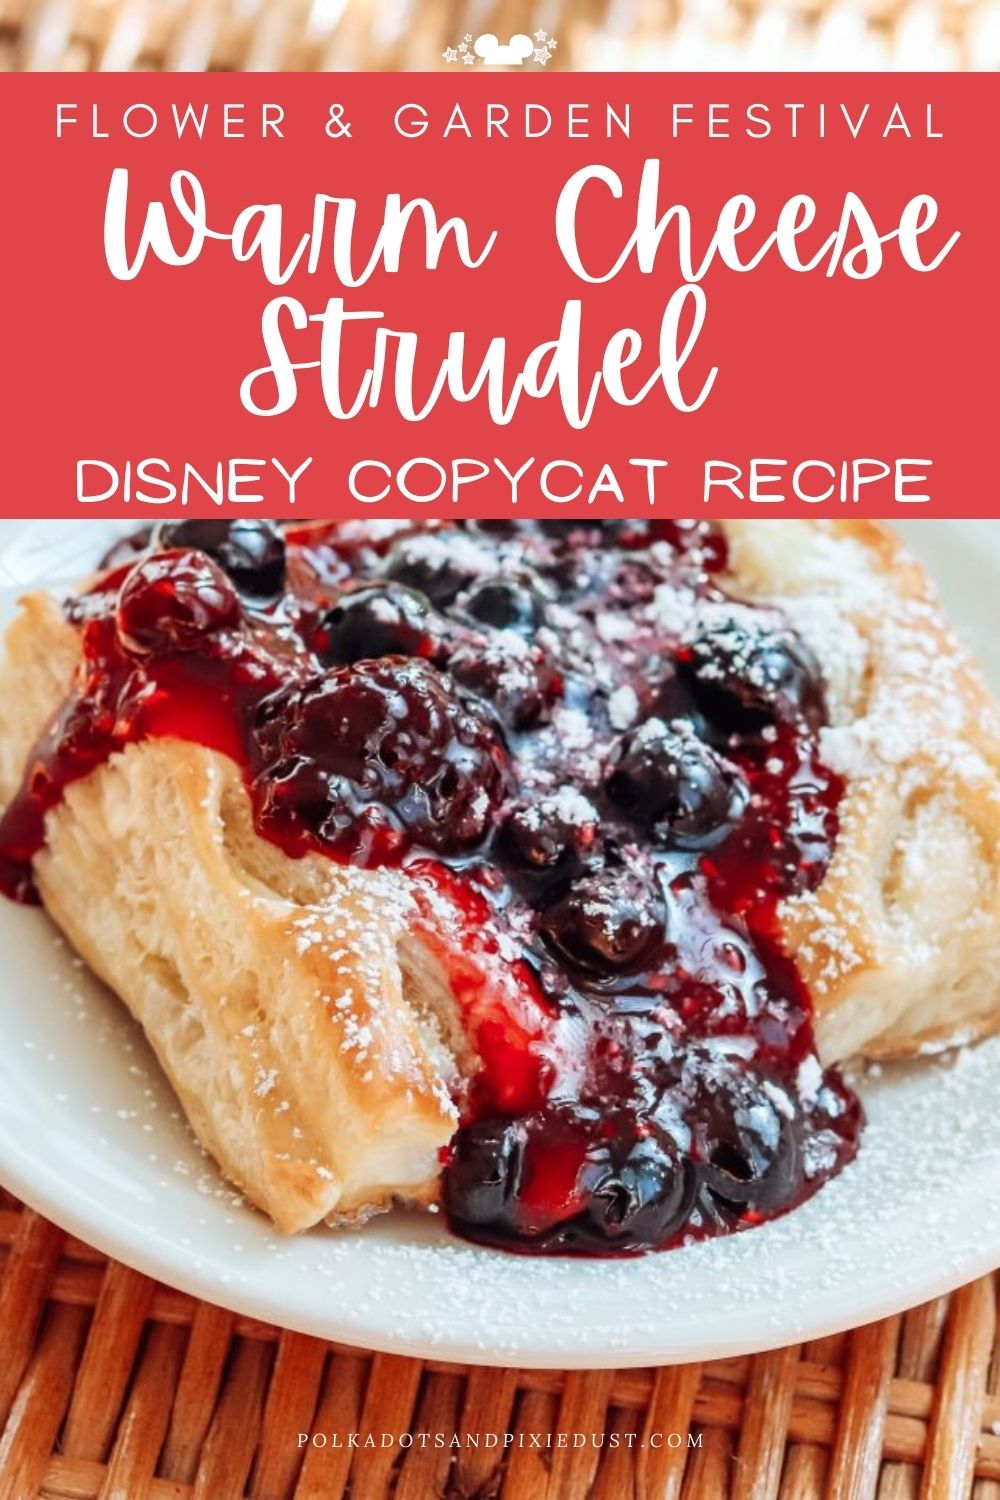 The Warm Cheese Strudel from Bauernnmarkt in Germany makes our Favorite Foods at Disney's Flower and Garden Festival EVERY YEAR! Because it is that good! #polkadotpixies #disneyrecipes